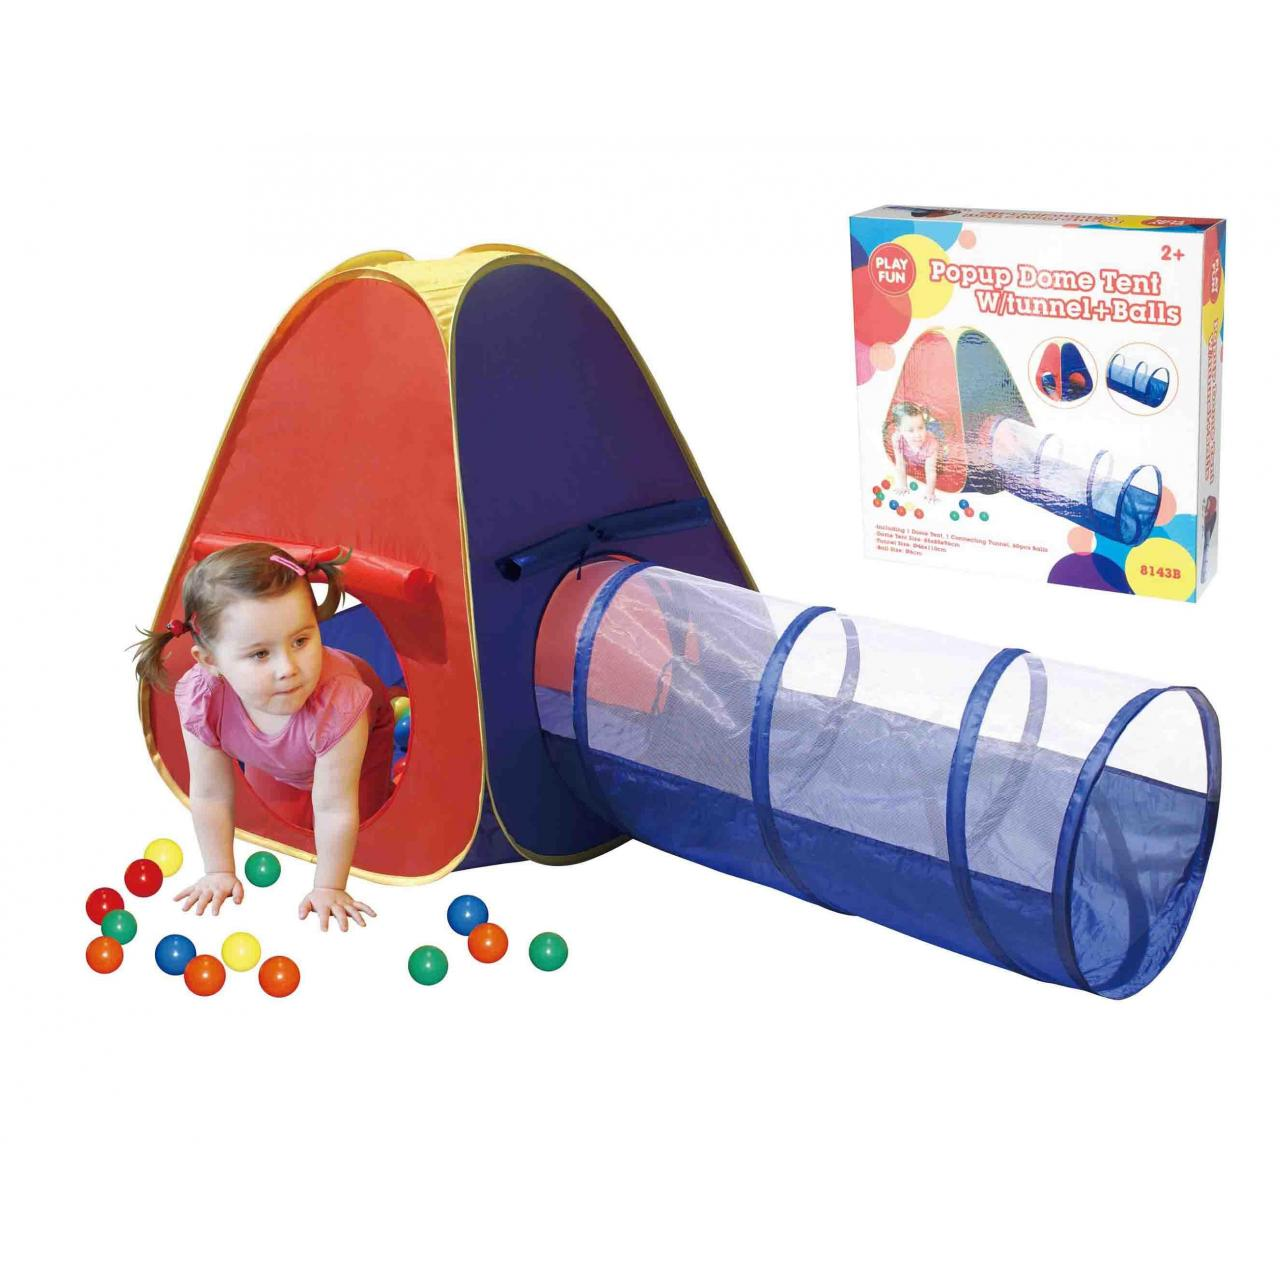 Buy cheap Tent 8143B POPUP DOME SET W/BALLS from wholesalers